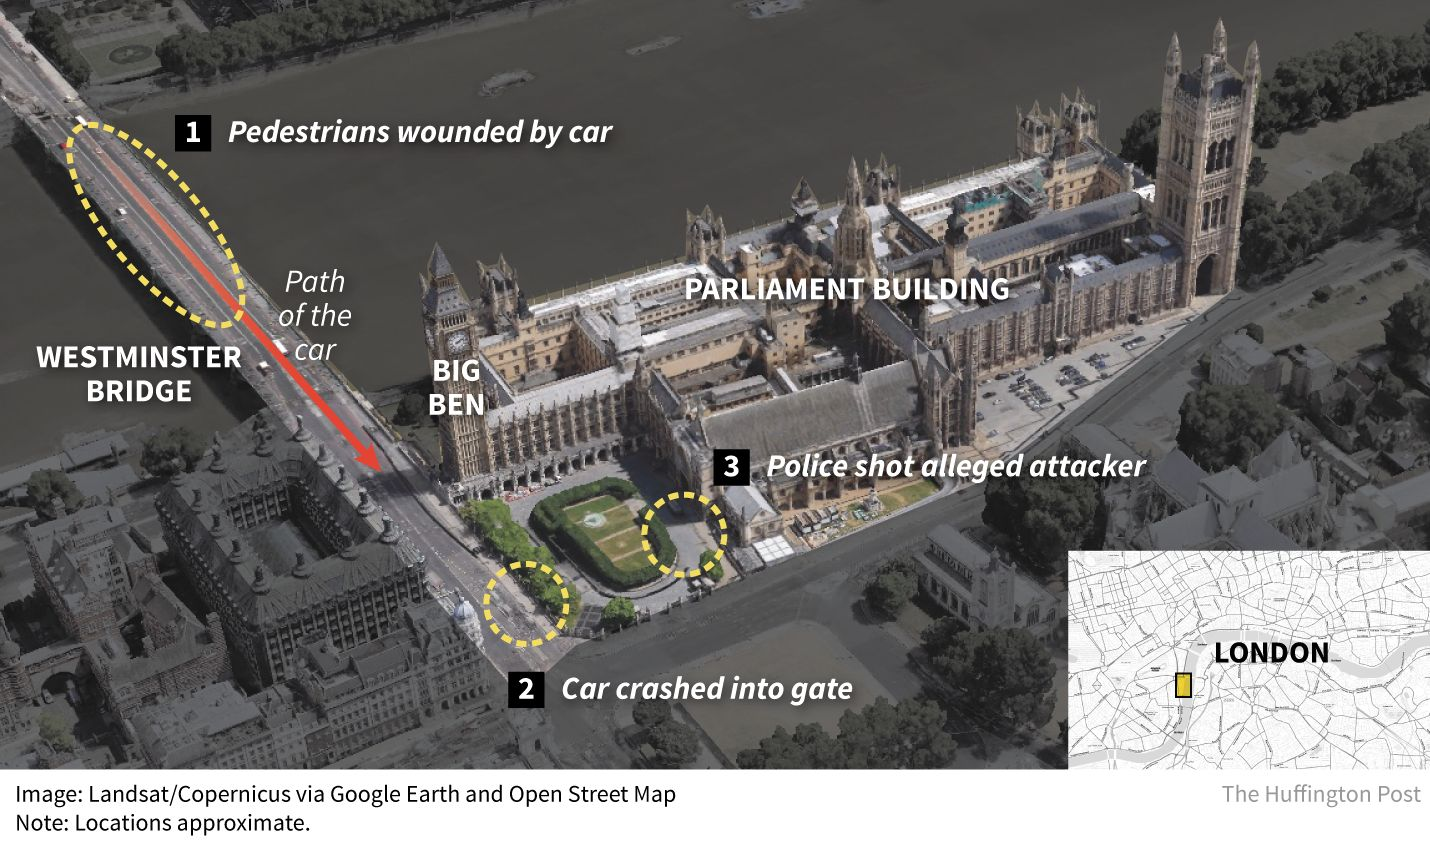 Five people were killed in an attack on Parliament in London on